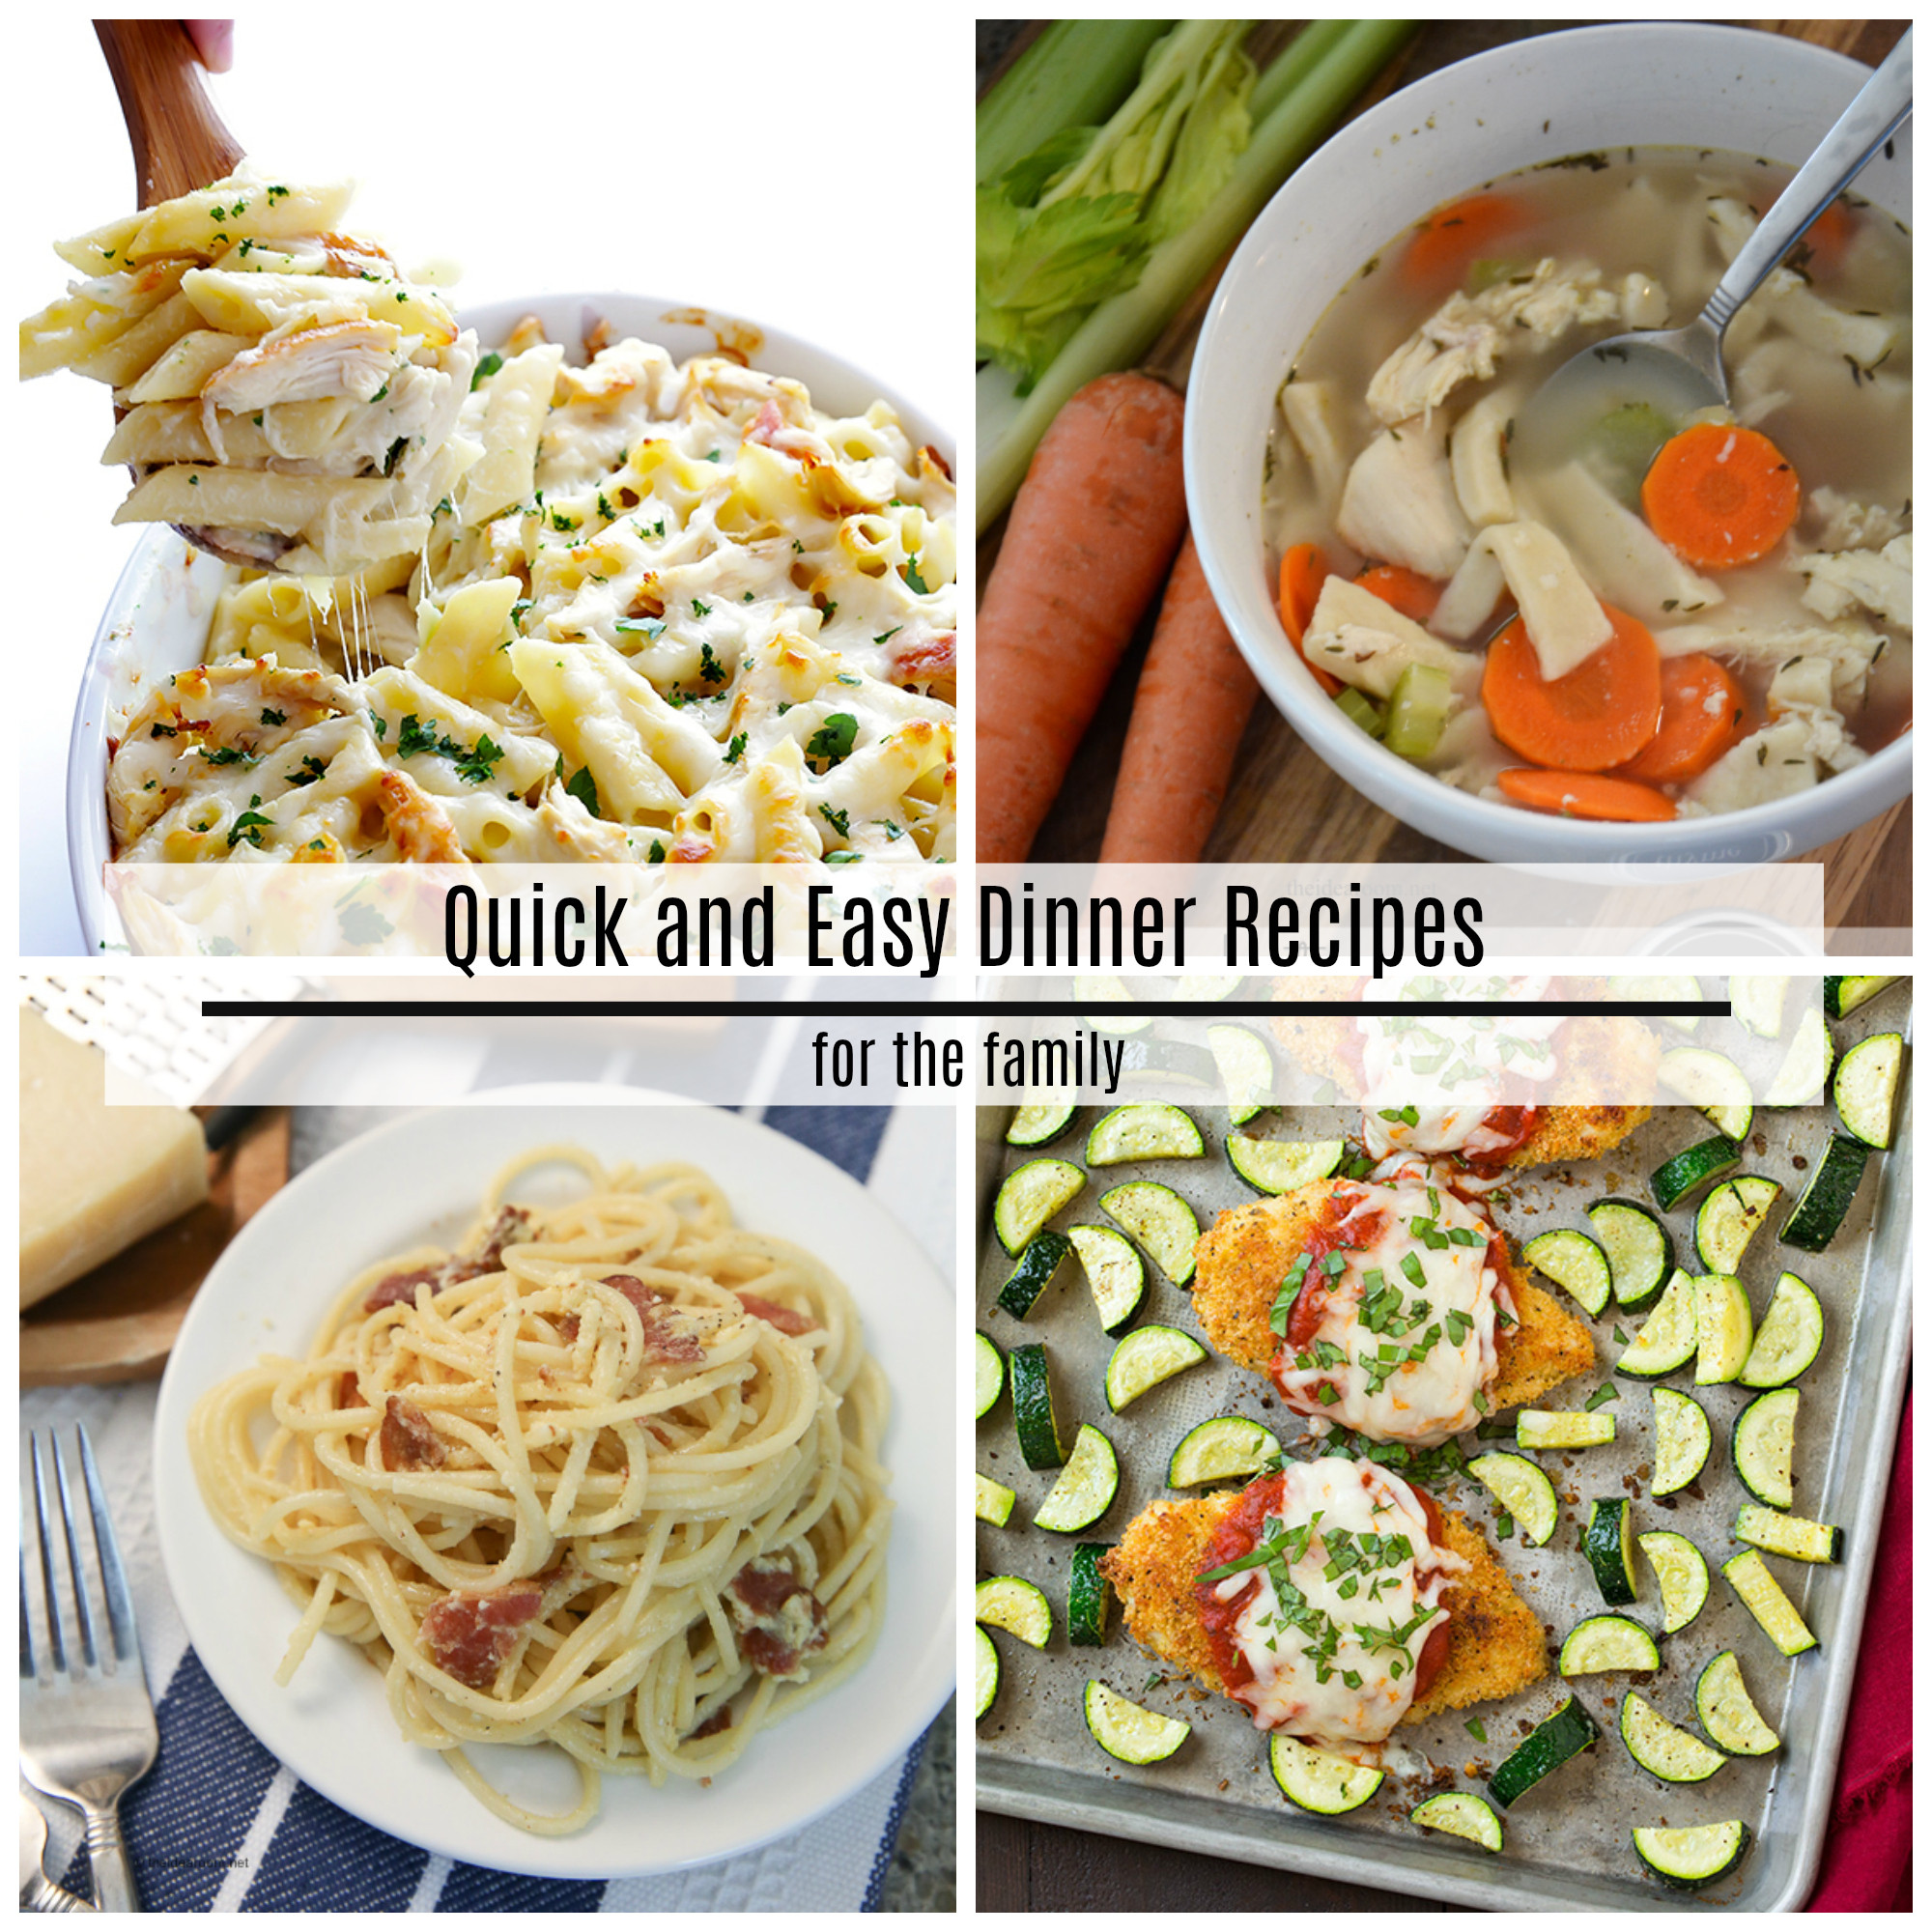 Fast Easy Dinner Recipies Quick and Easy Dinner Recipes The Idea Room